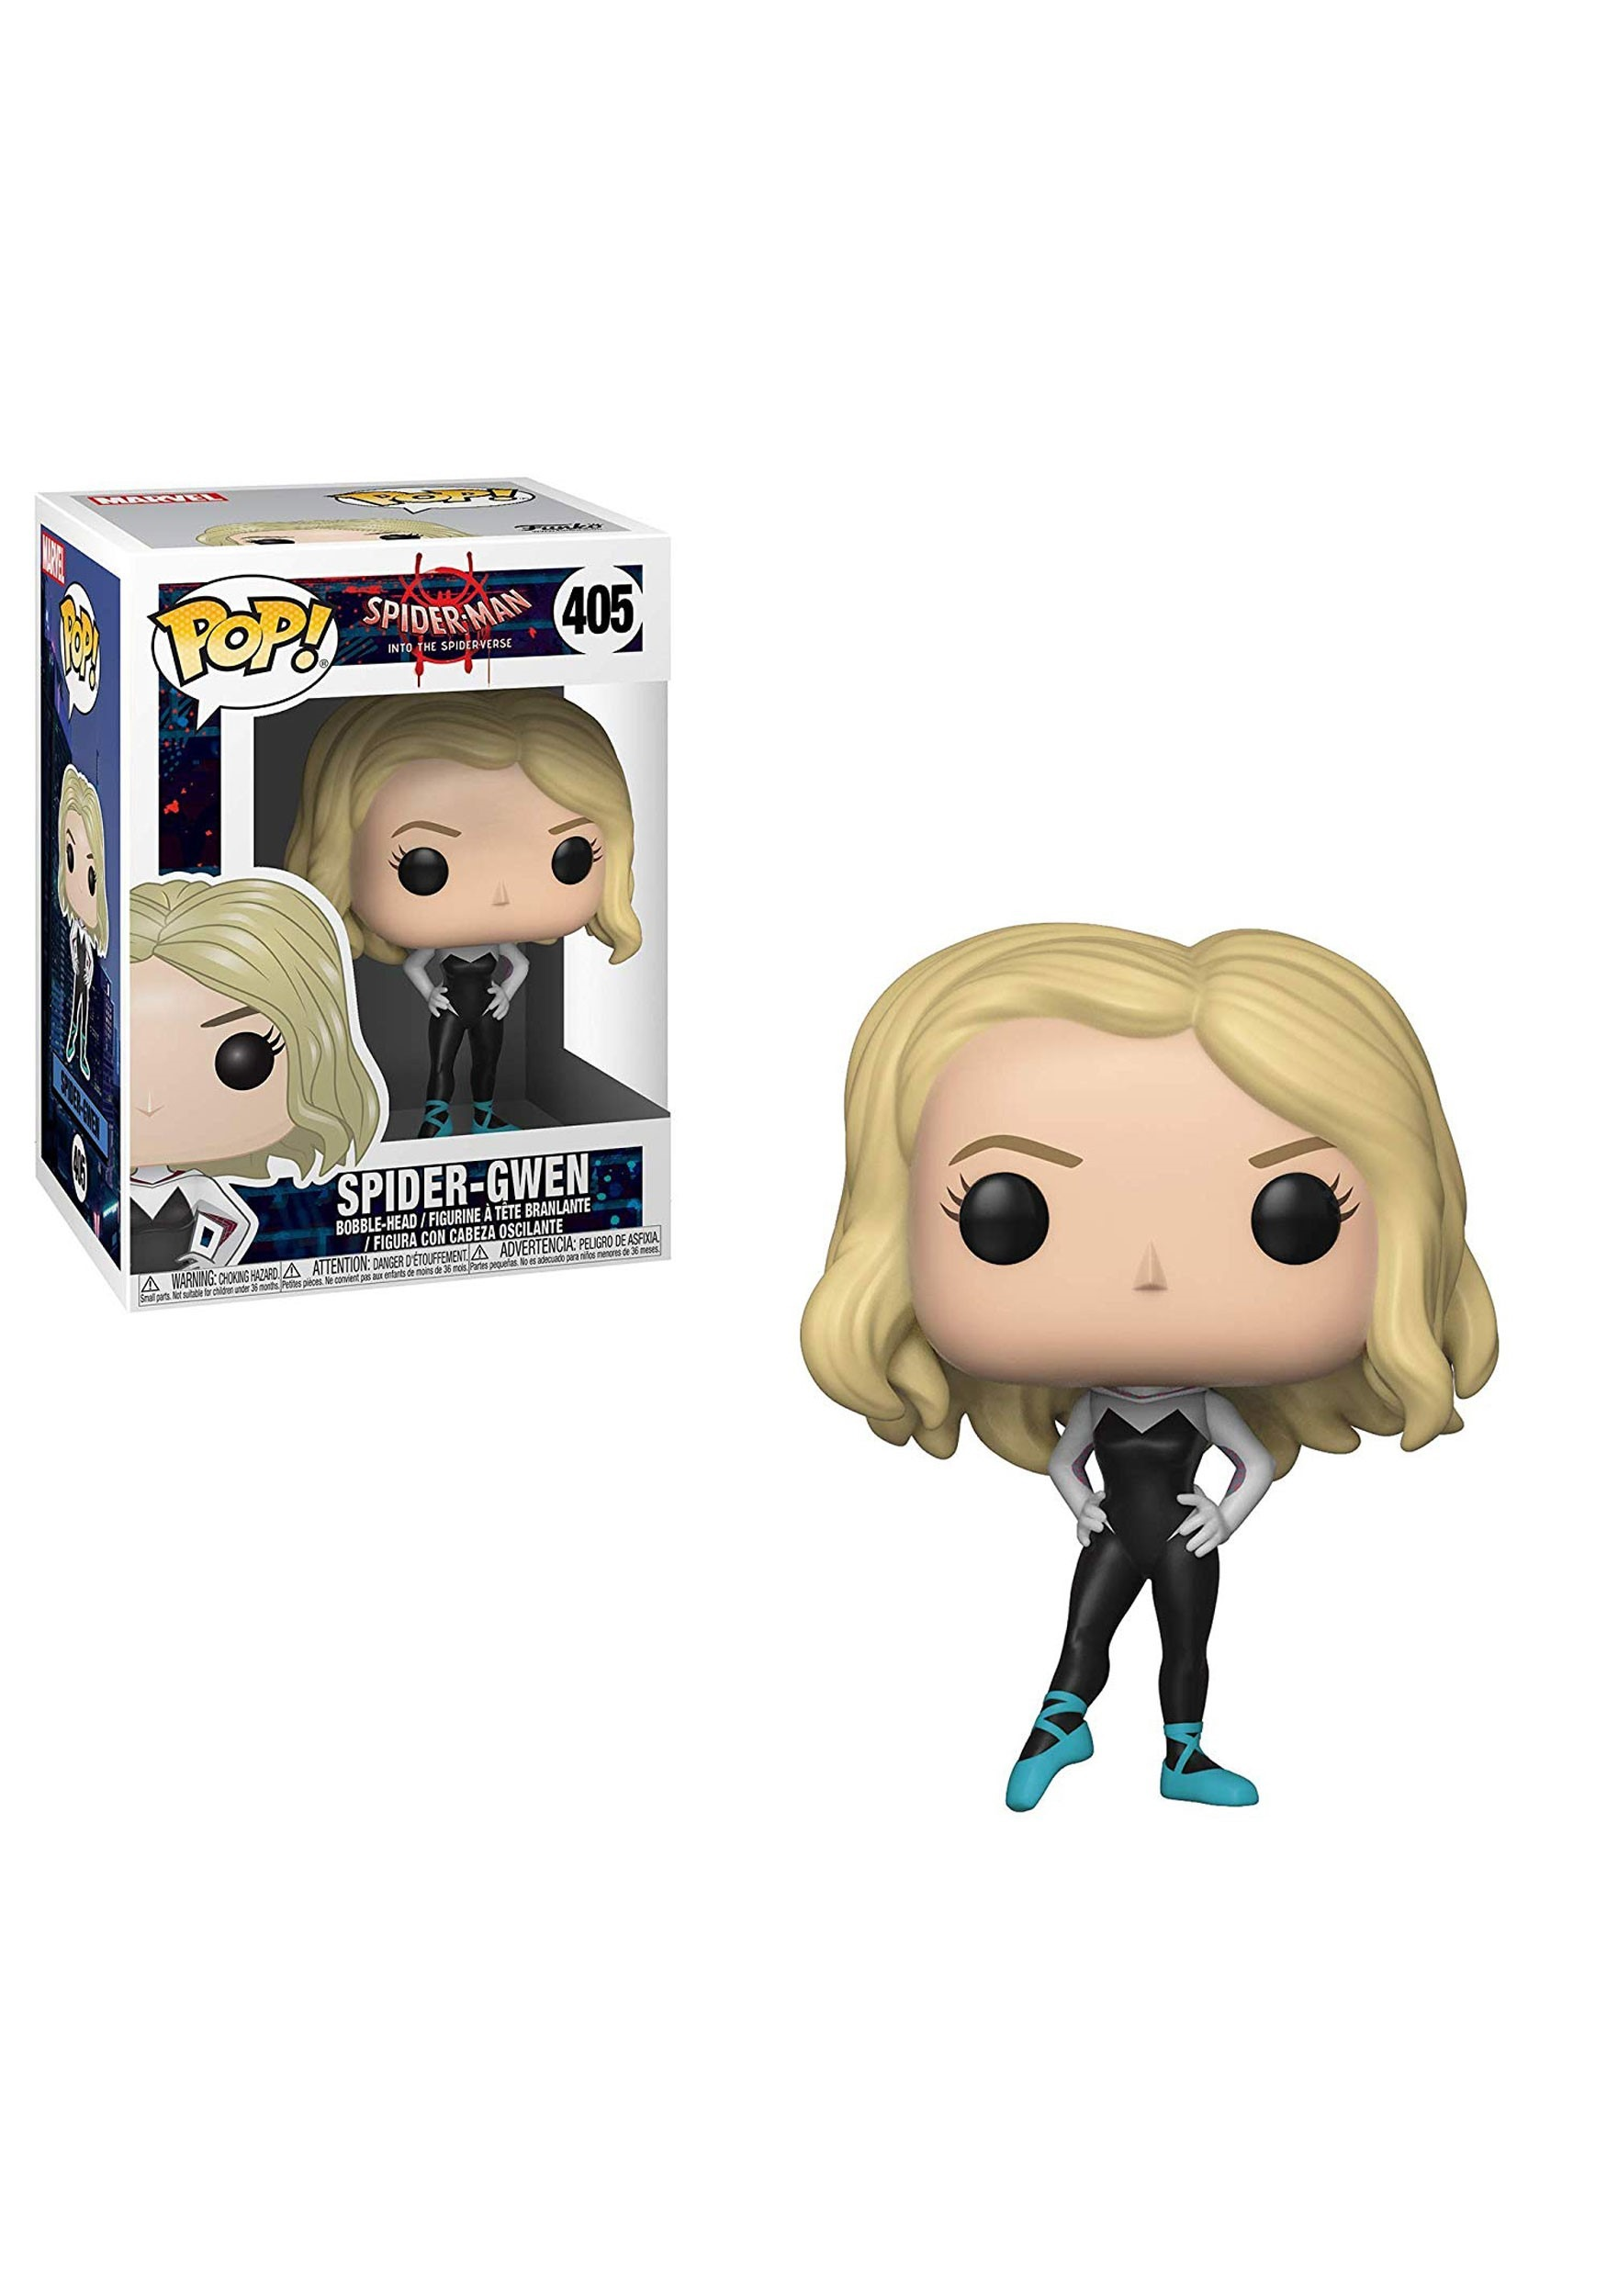 POP! Marvel: Spider-Man: Into the Spider-Verse: Spider-Gwen Bobblehead Figure